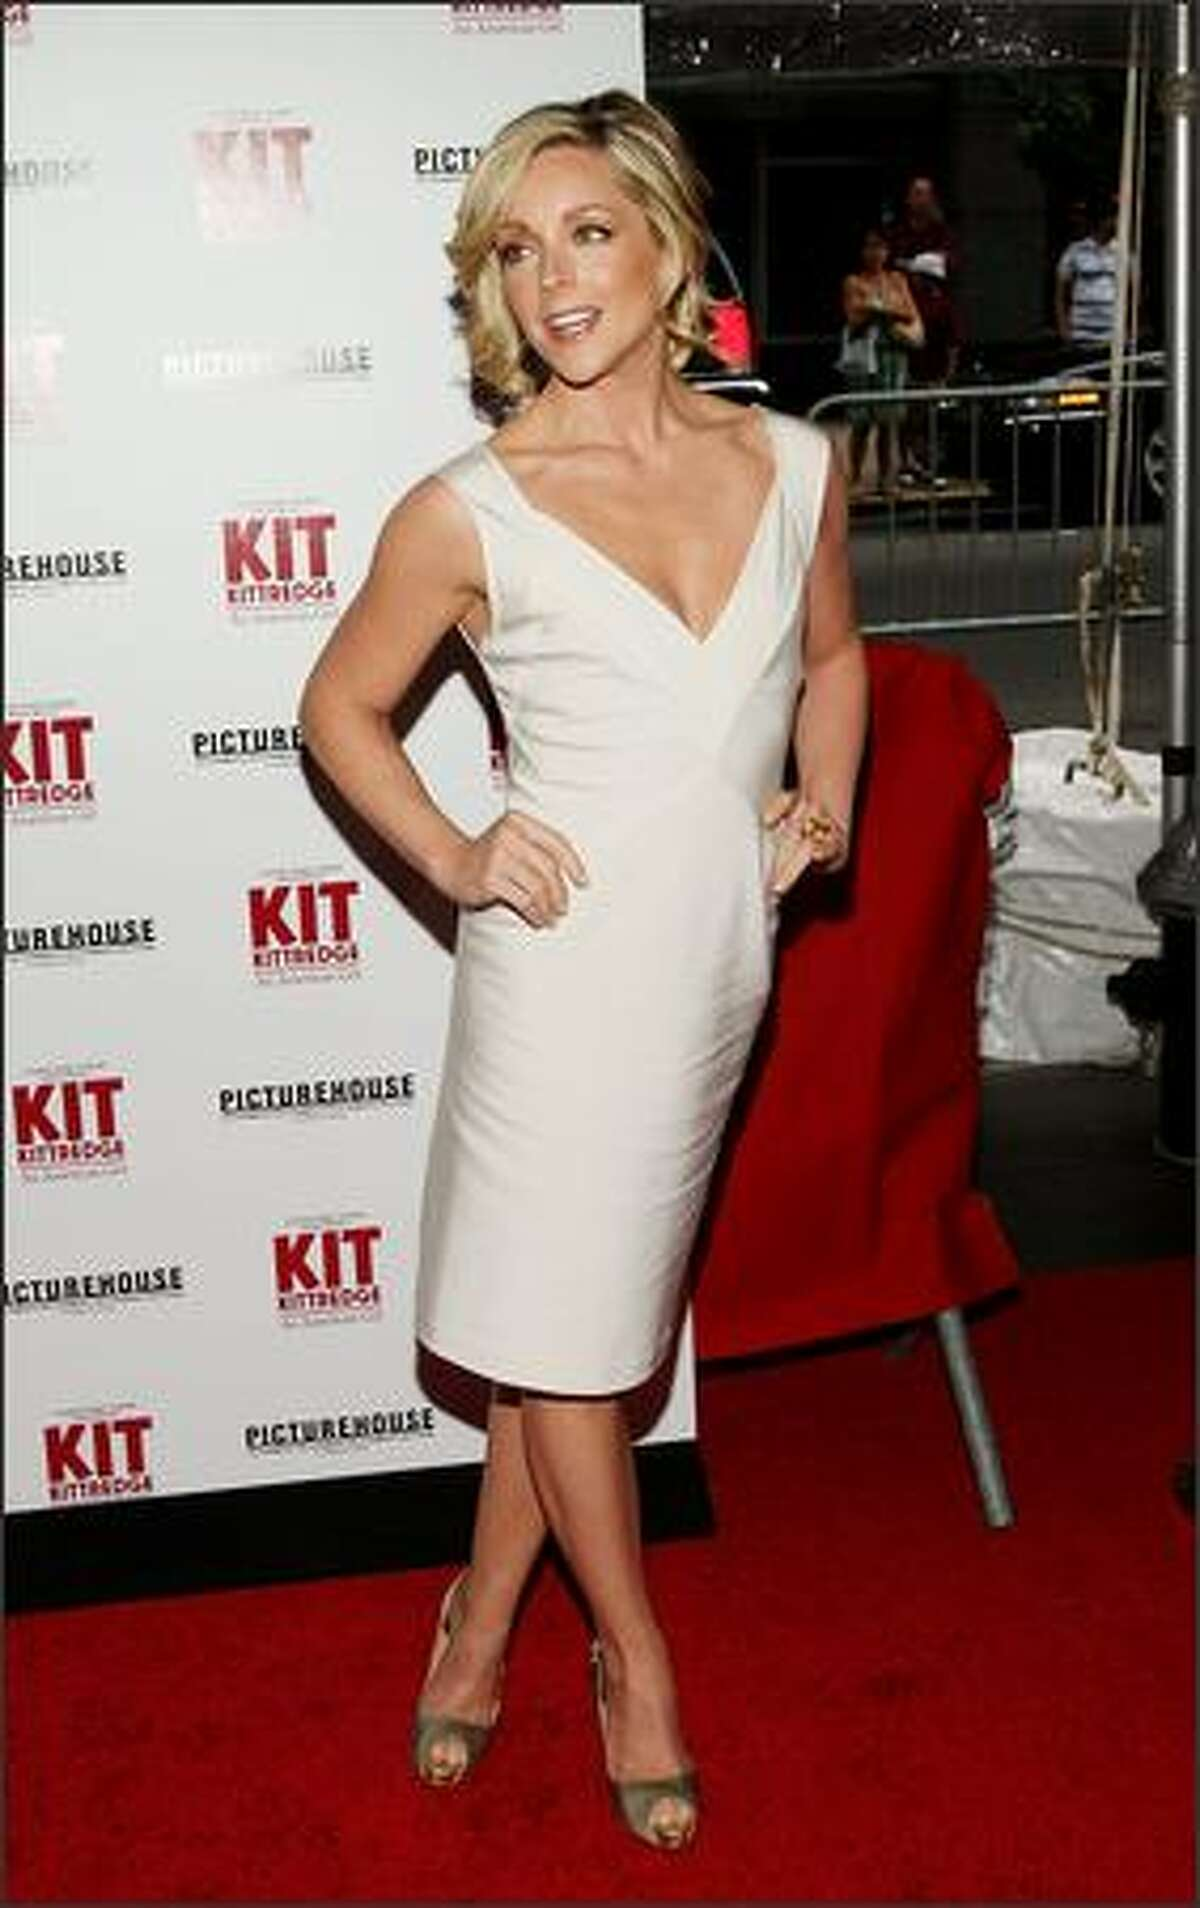 Actress Jane Krakowski attends the premiere of